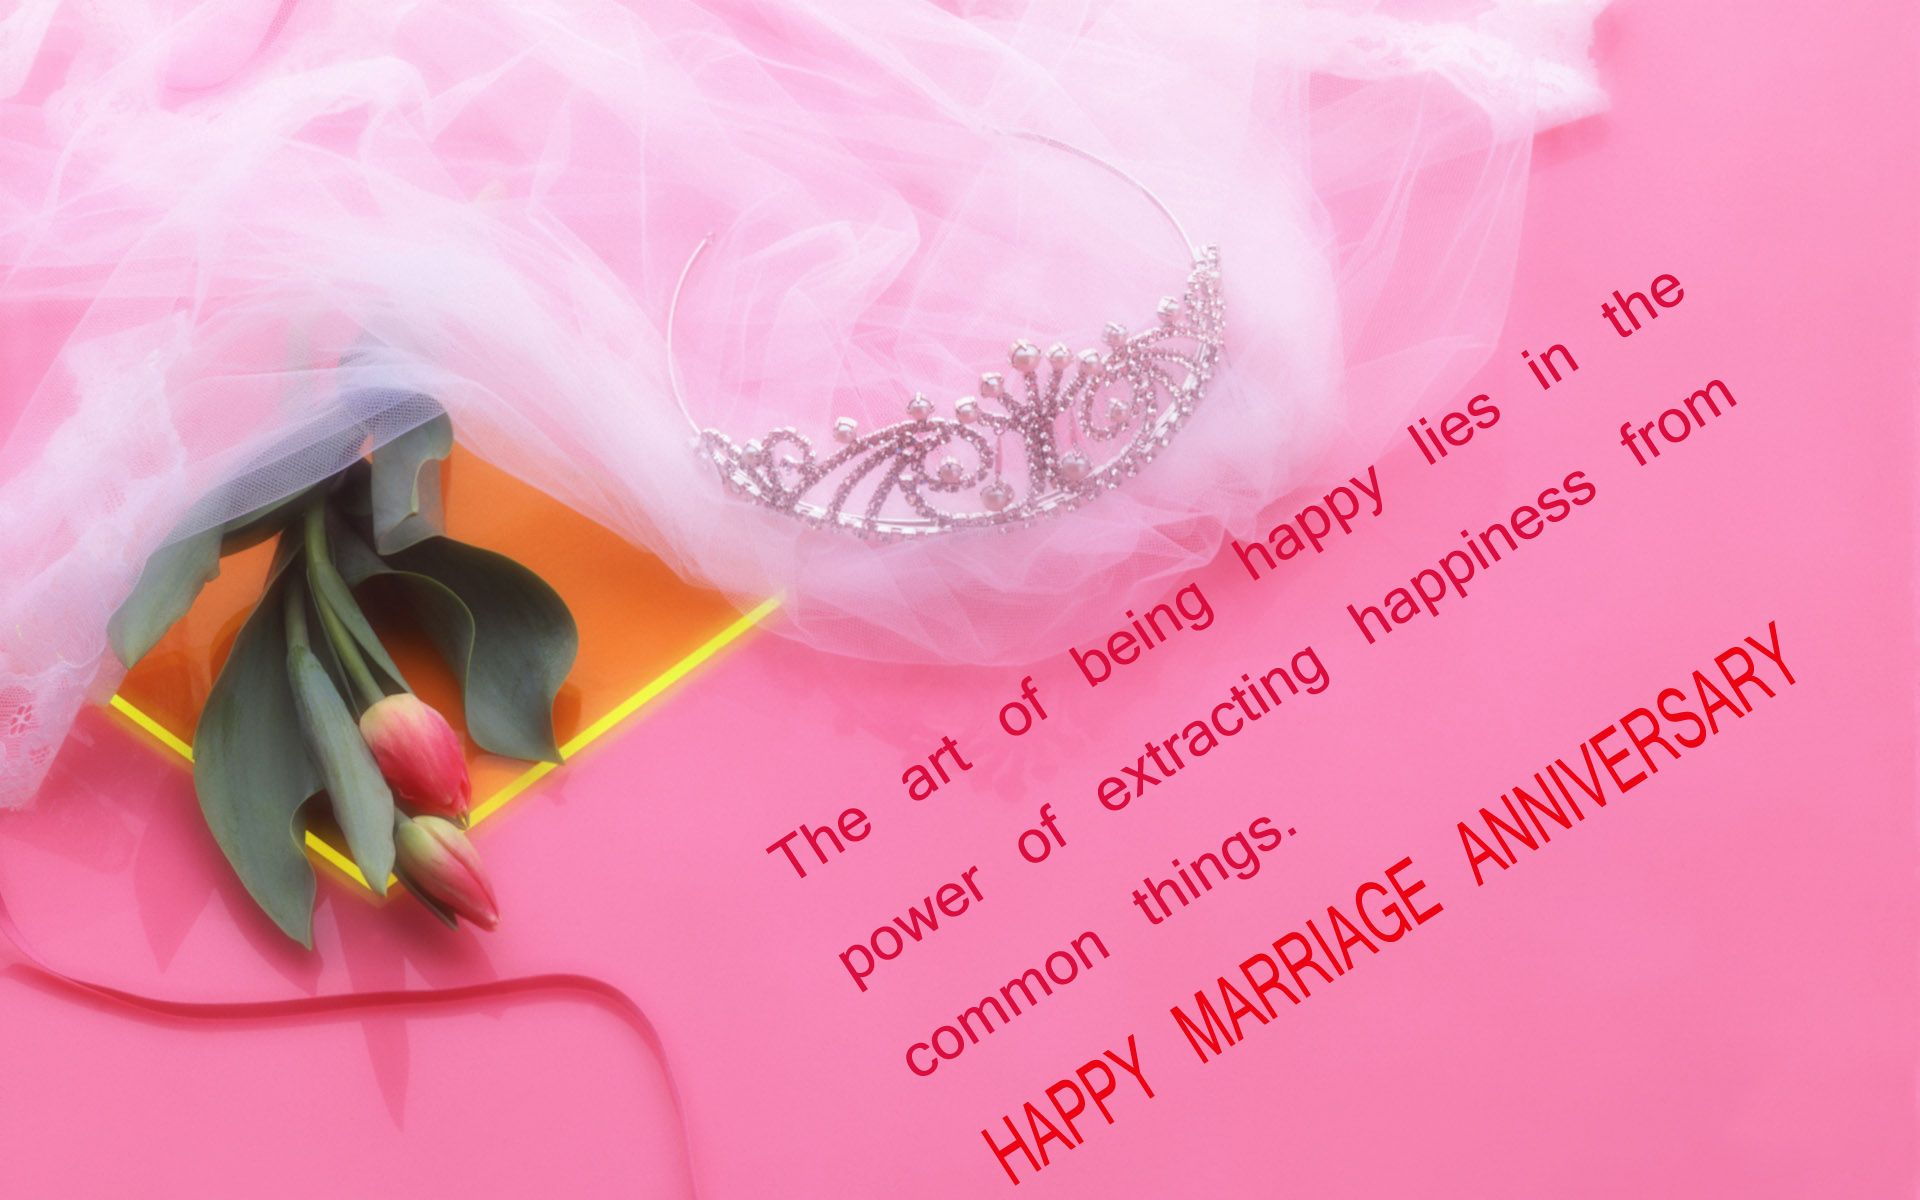 happy anniversary images free download happy anniversary